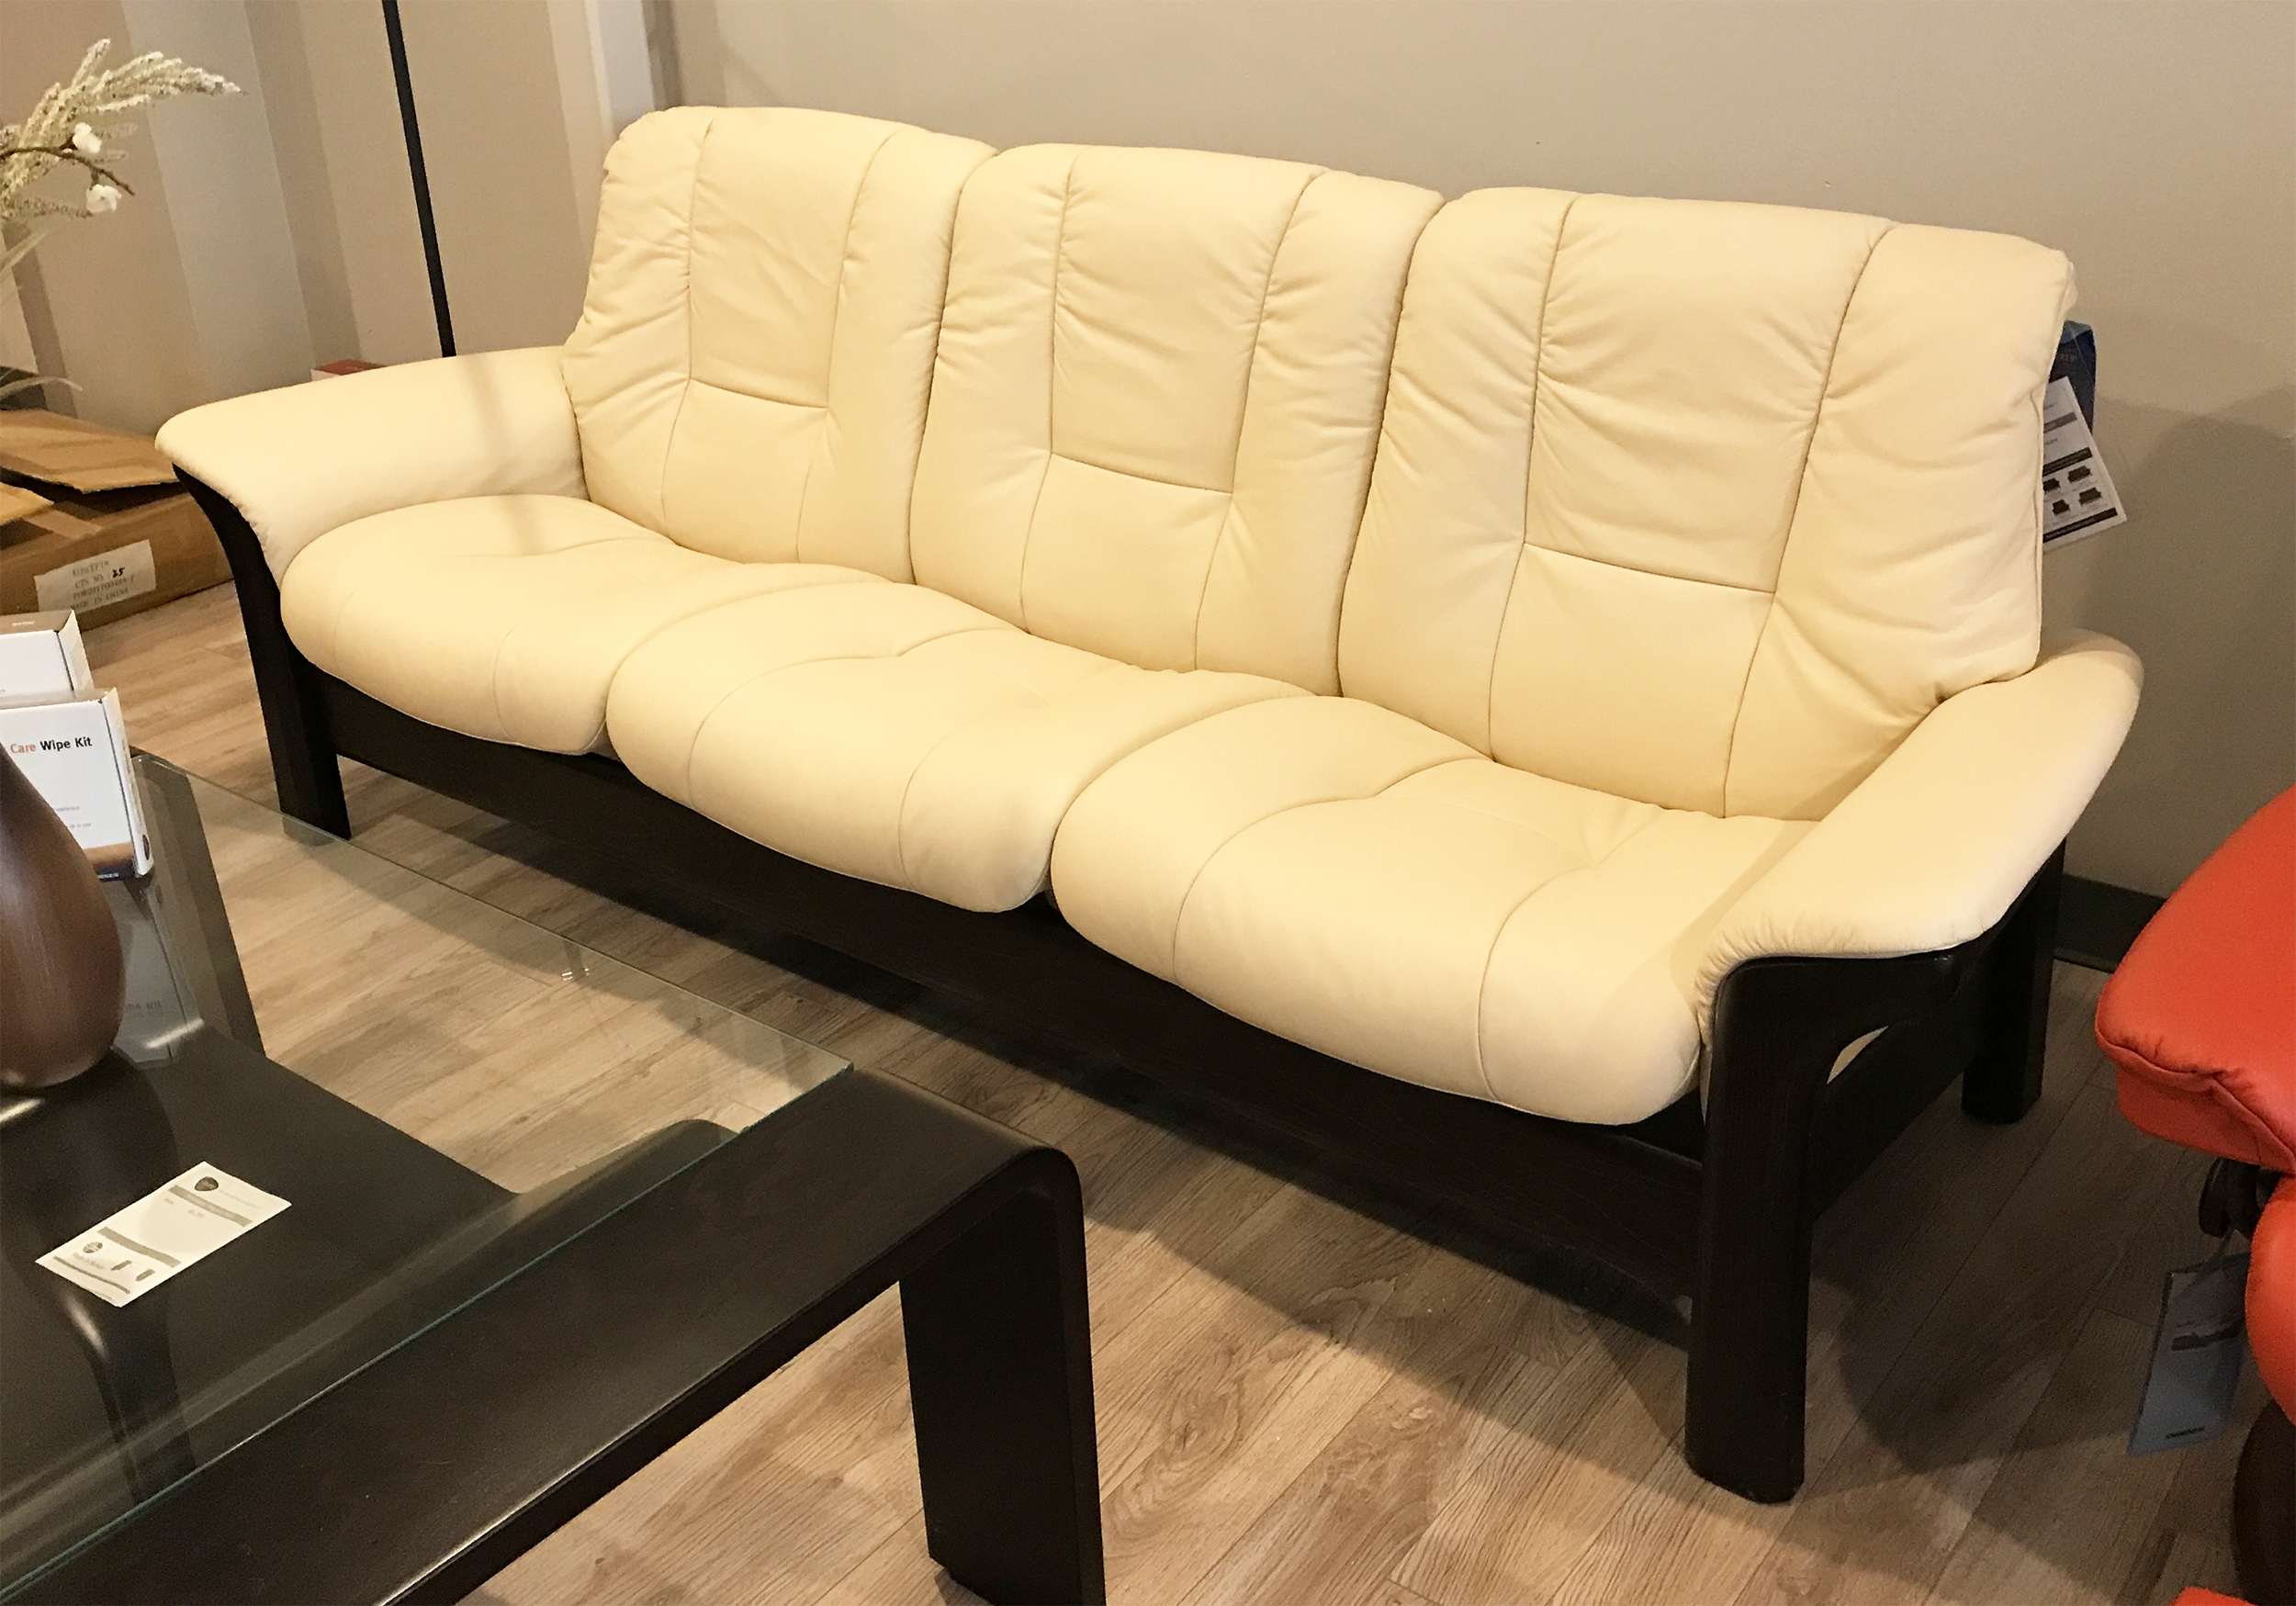 Ekornes Sofa Stressless Buckingham 3 Seat Low Back Sofa Batick Cream Color Leather By Ekornes